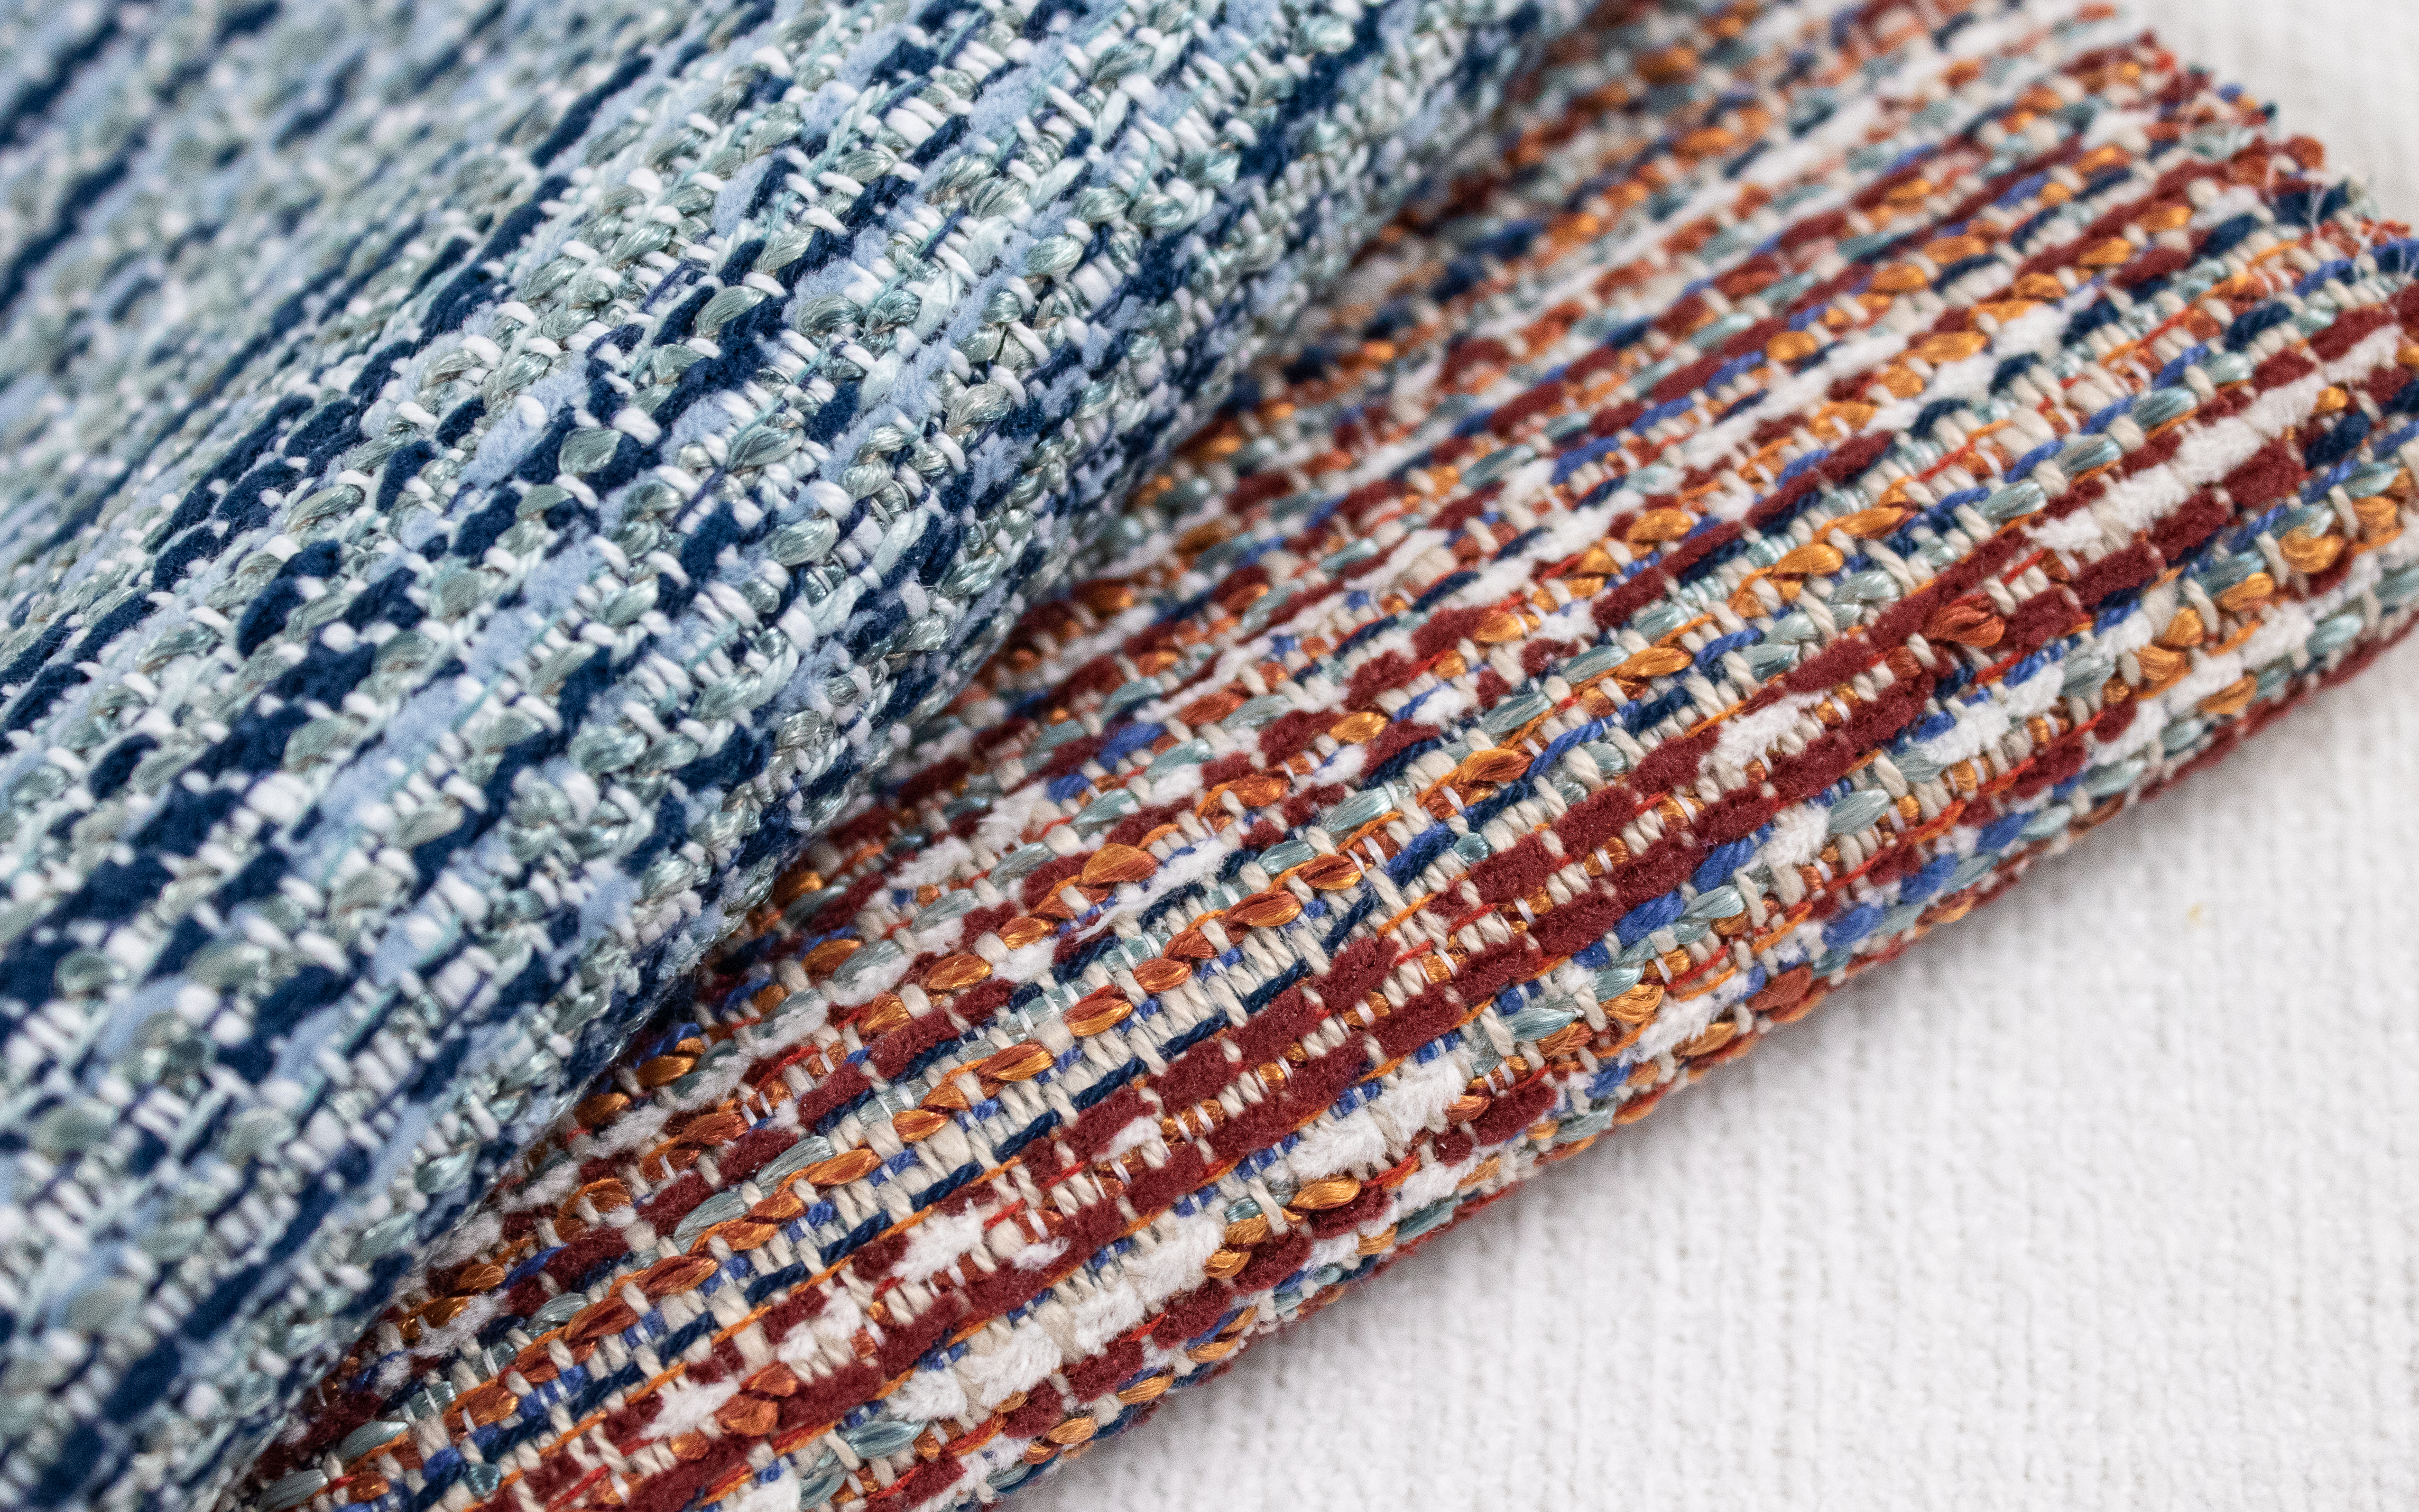 Rags Indoor Outdoor Performance Textile | Multi-colour Texture Inside Out Performance Fabric Bleach Cleanable